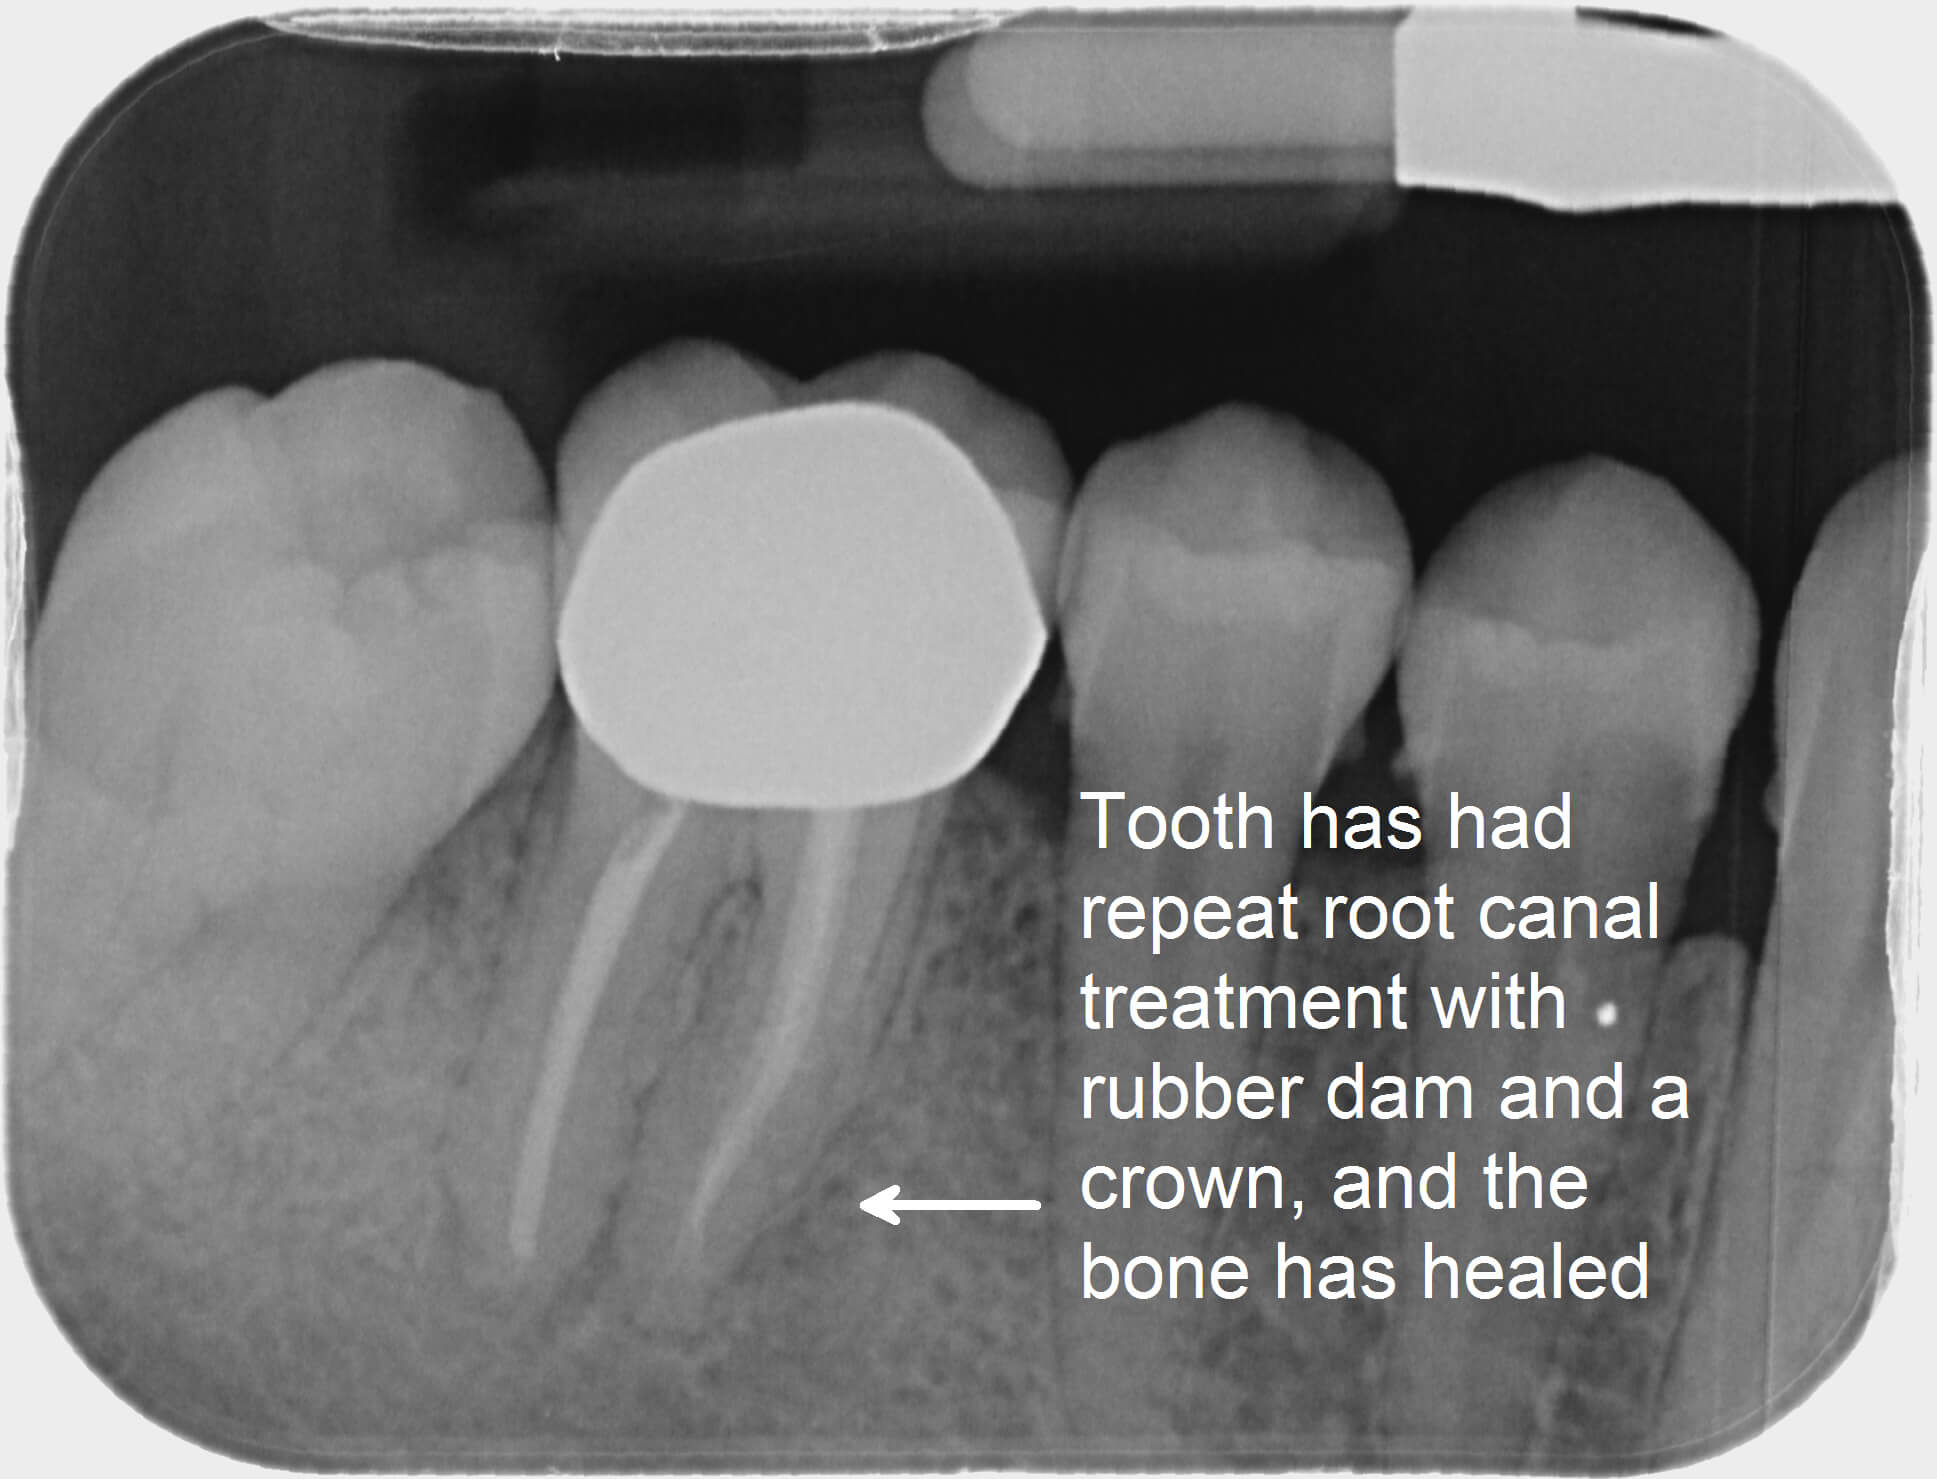 Repeated Root Canal Treatment with Rubber Dam and a Crown